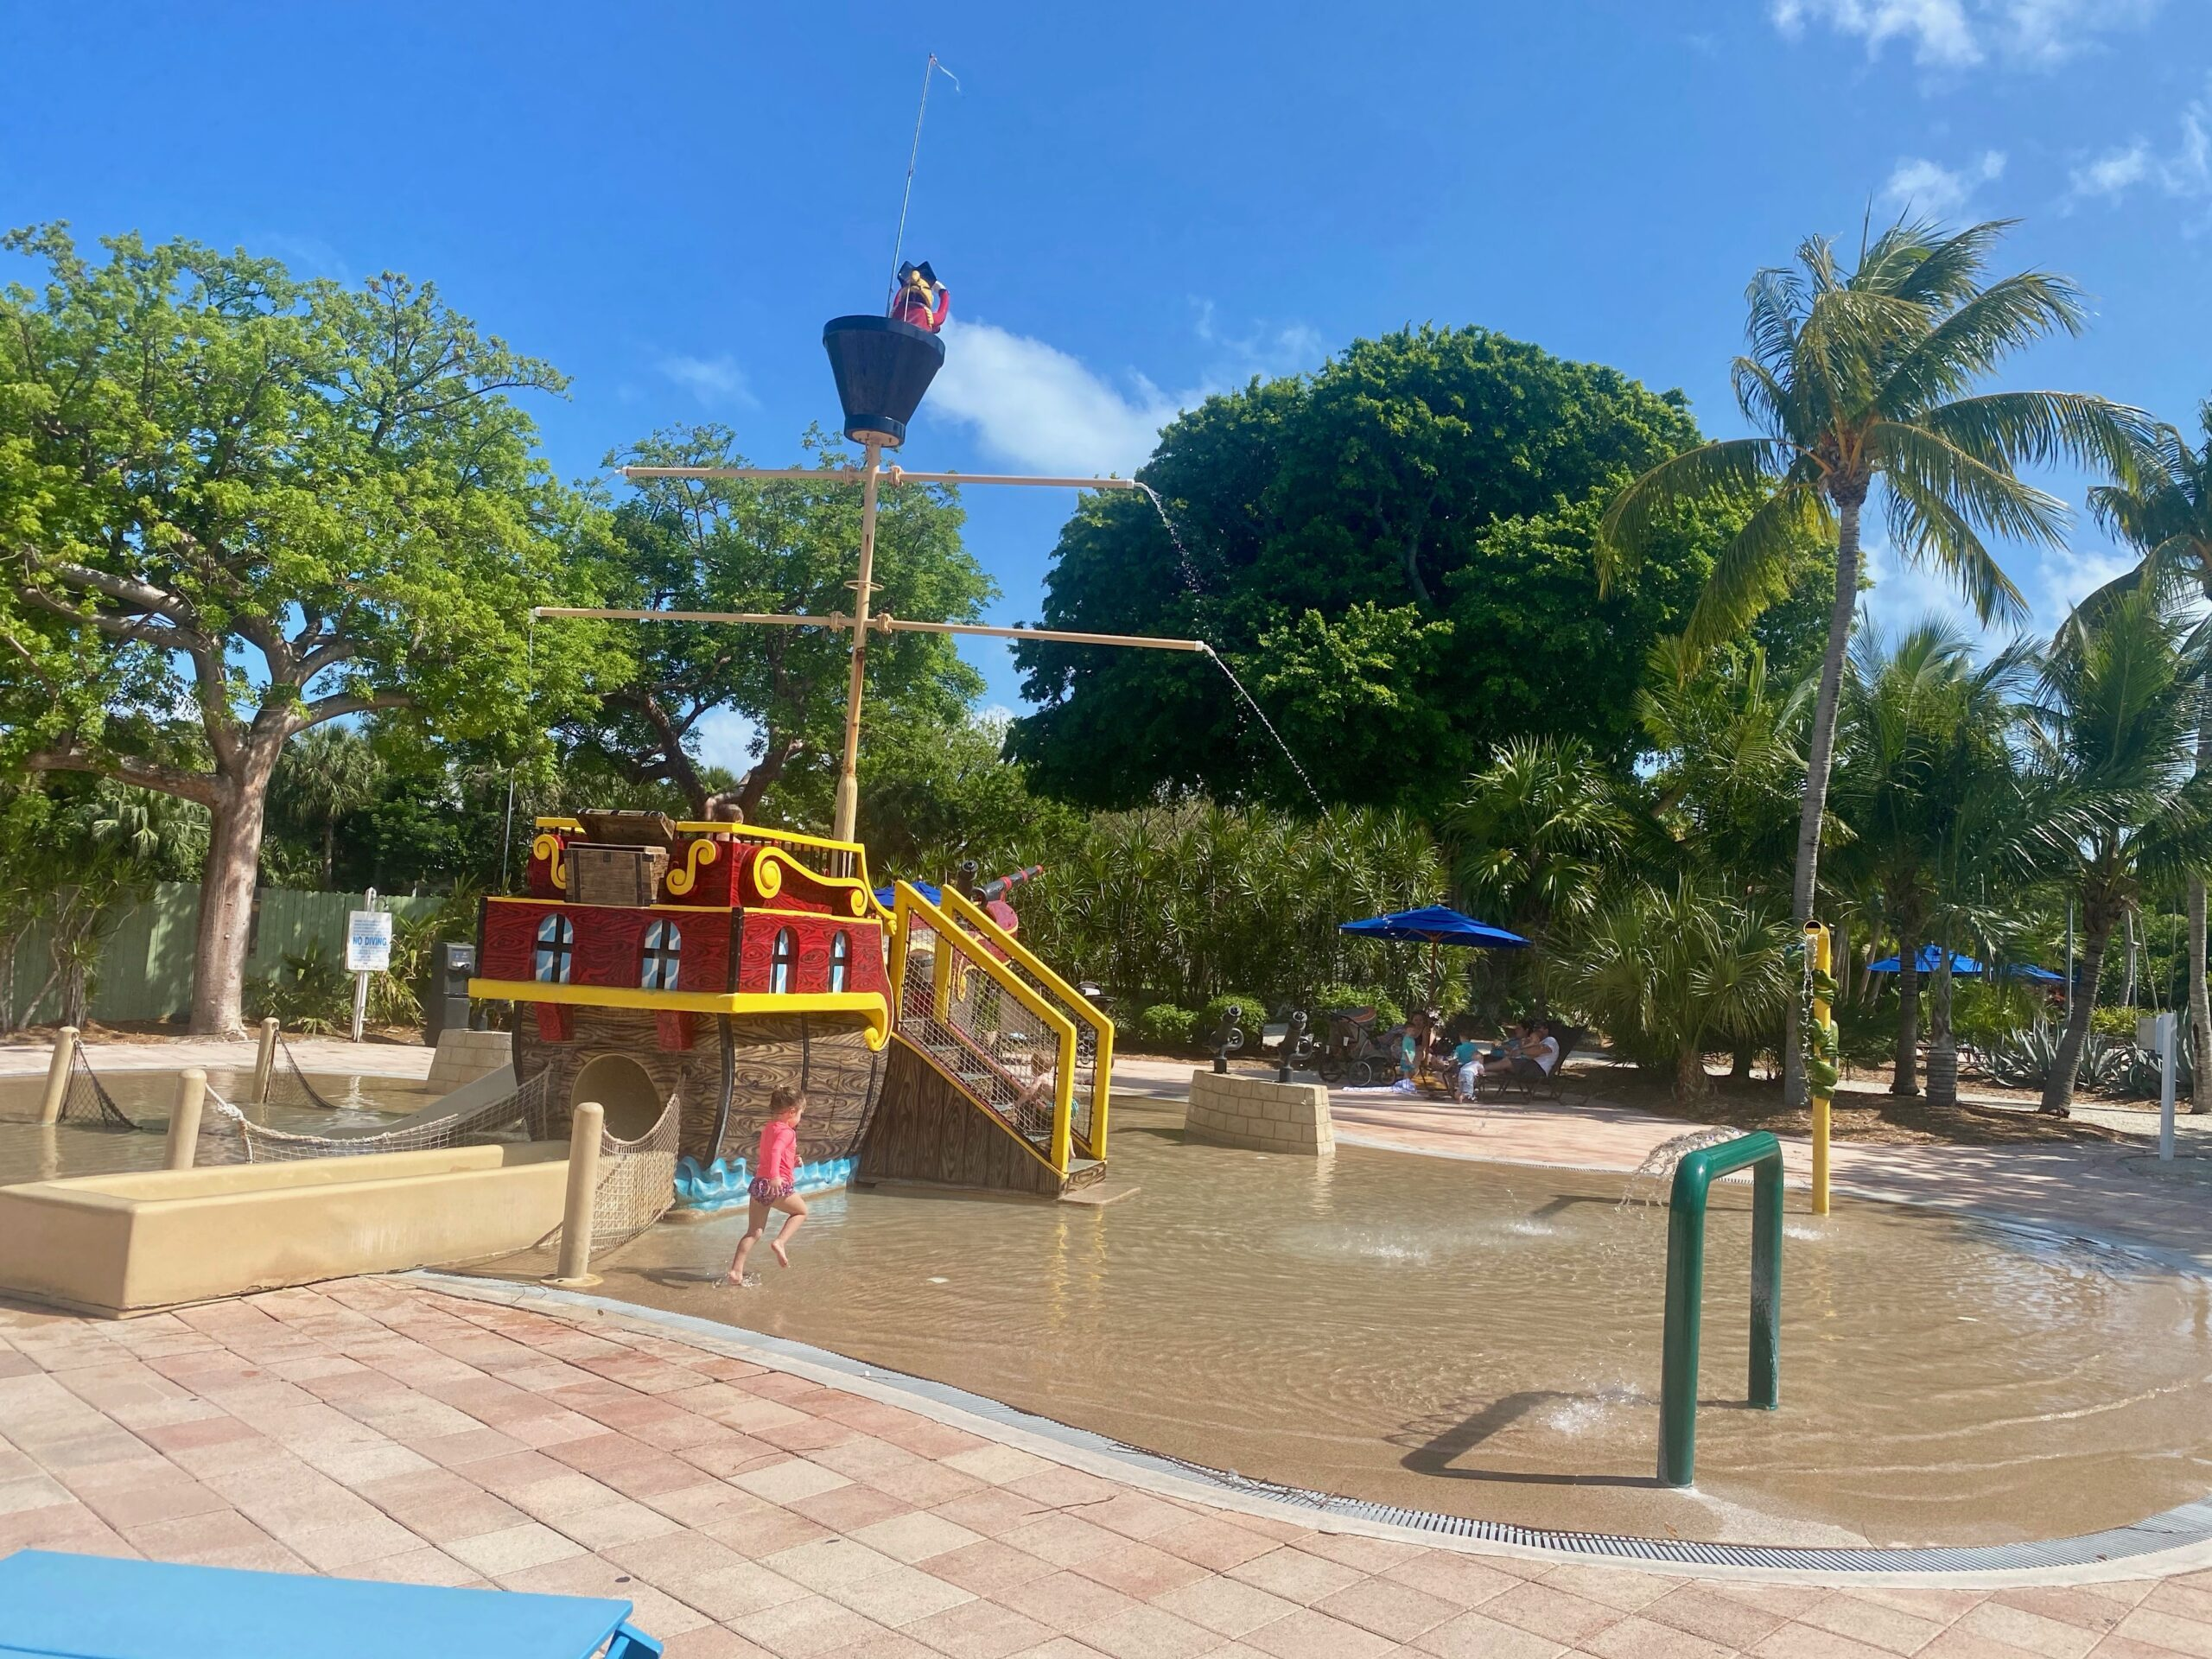 Pirate Ship Pool at Hawks Cay, one of the fun things to do with kids